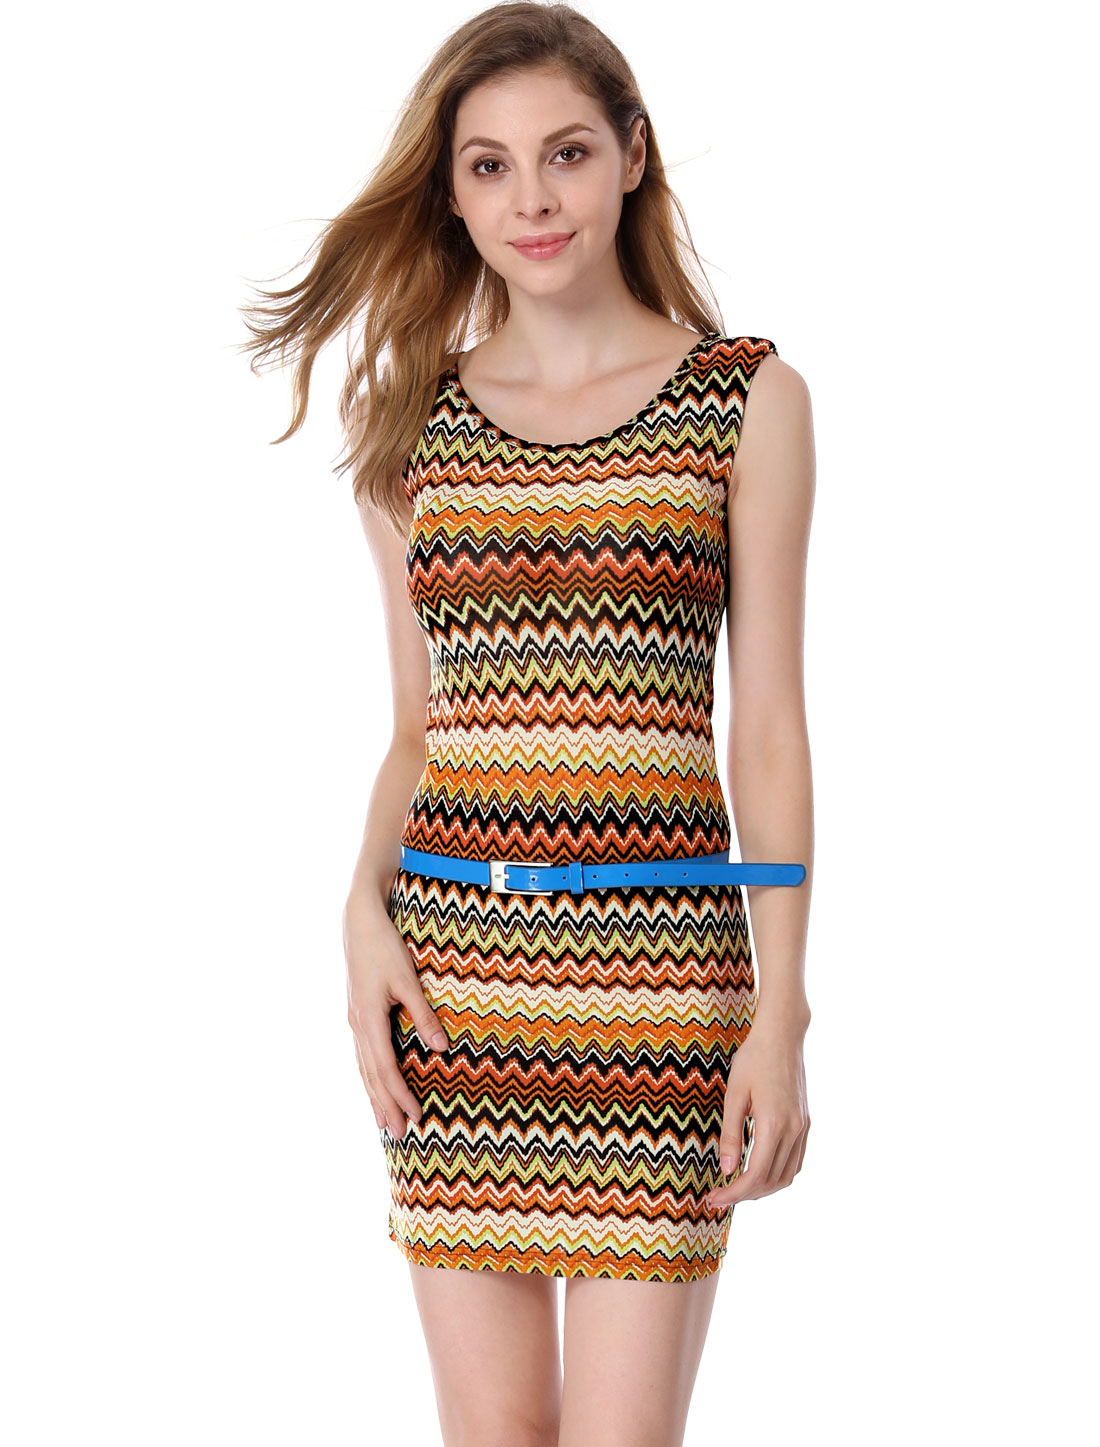 Chic Orange Light Yellow Wave Prints Slim Fit Mini Dress for Lady M